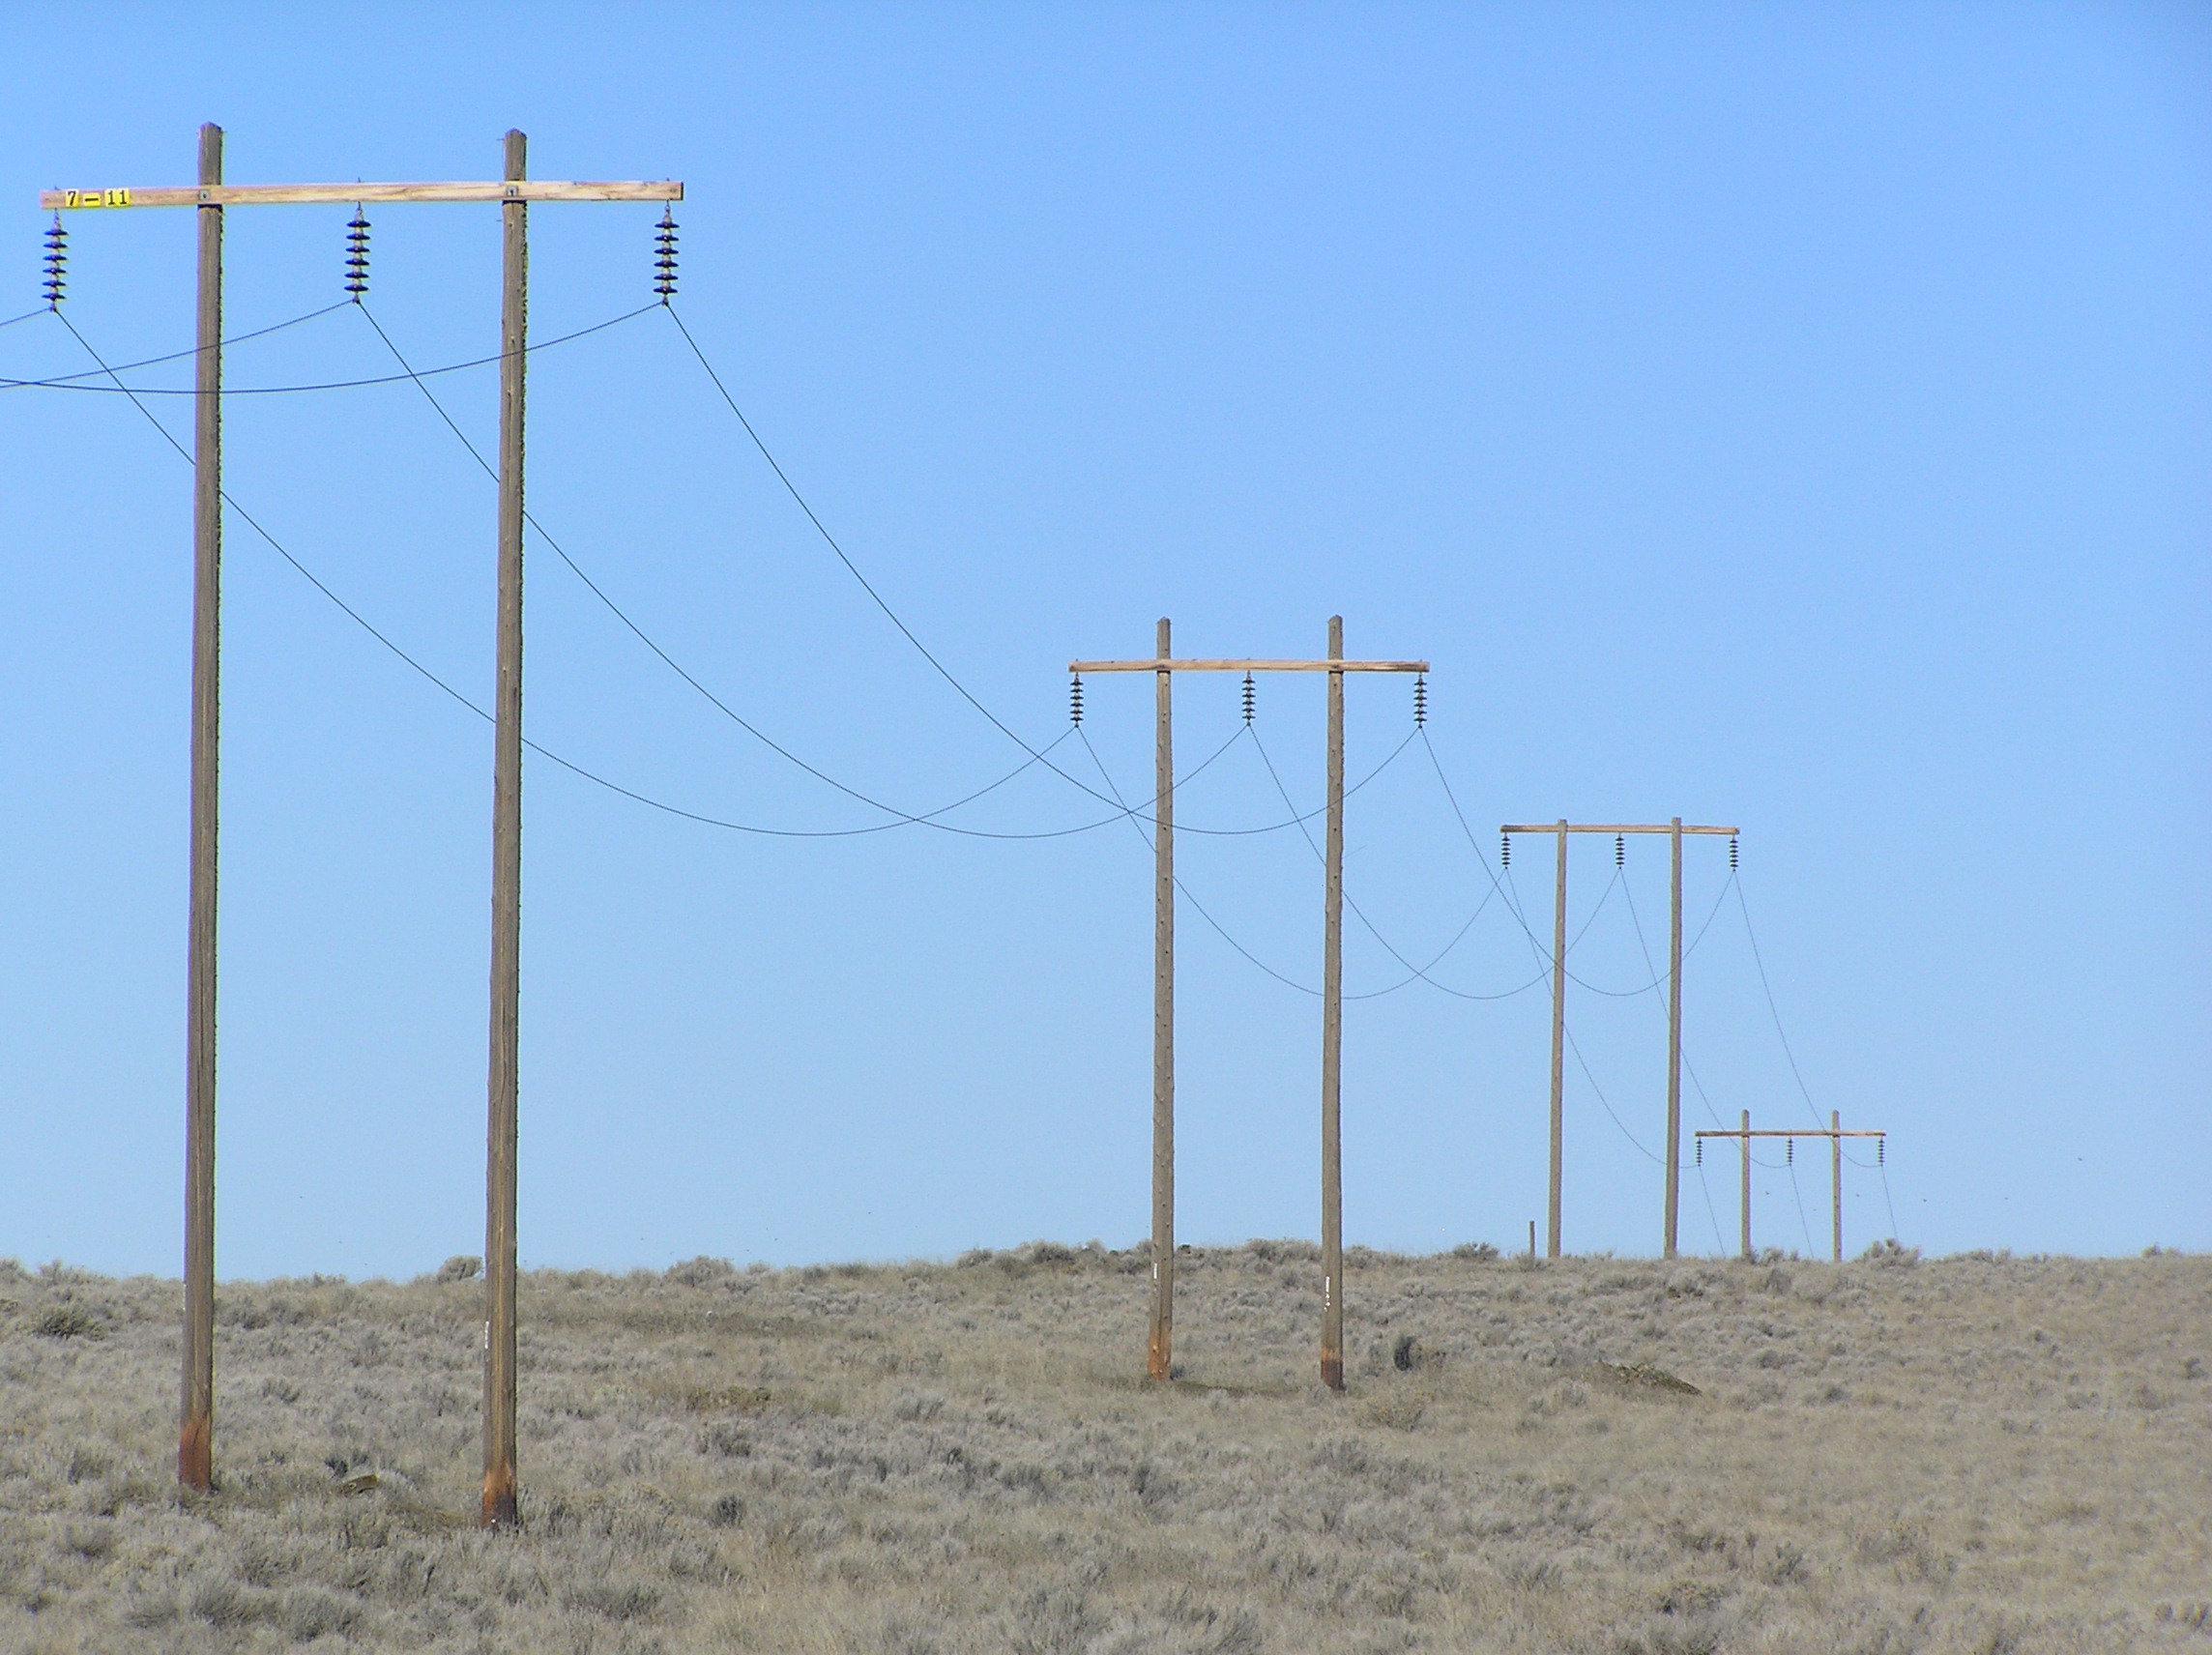 Repair work continues from massive power outage